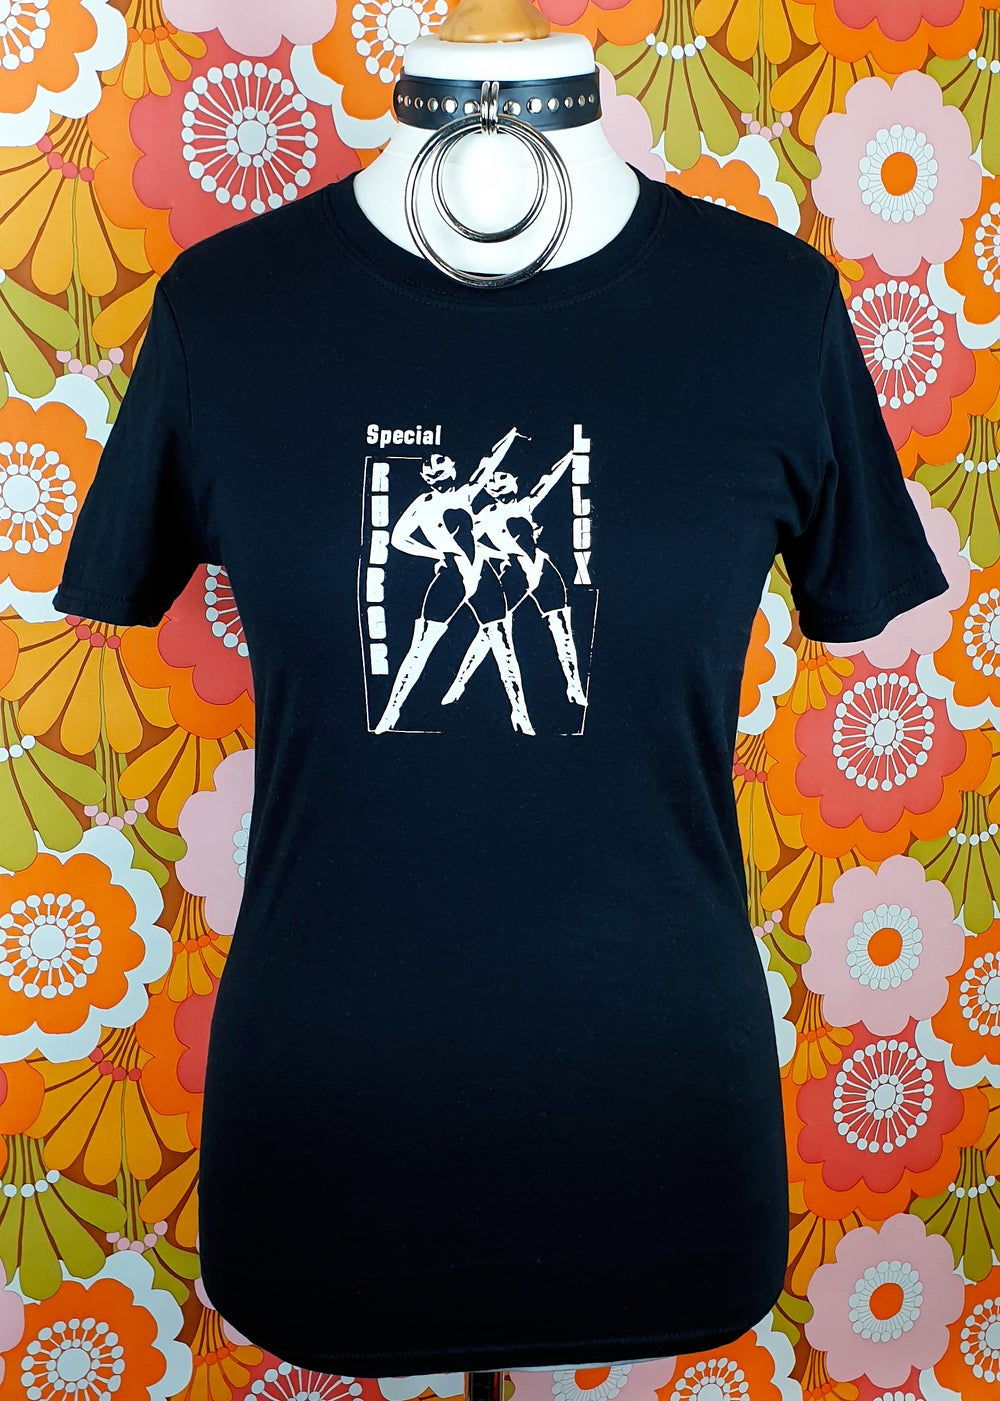 ImpermDelects 'SPECIAL RUBBER' Print Limited Run Unisex Tshirt